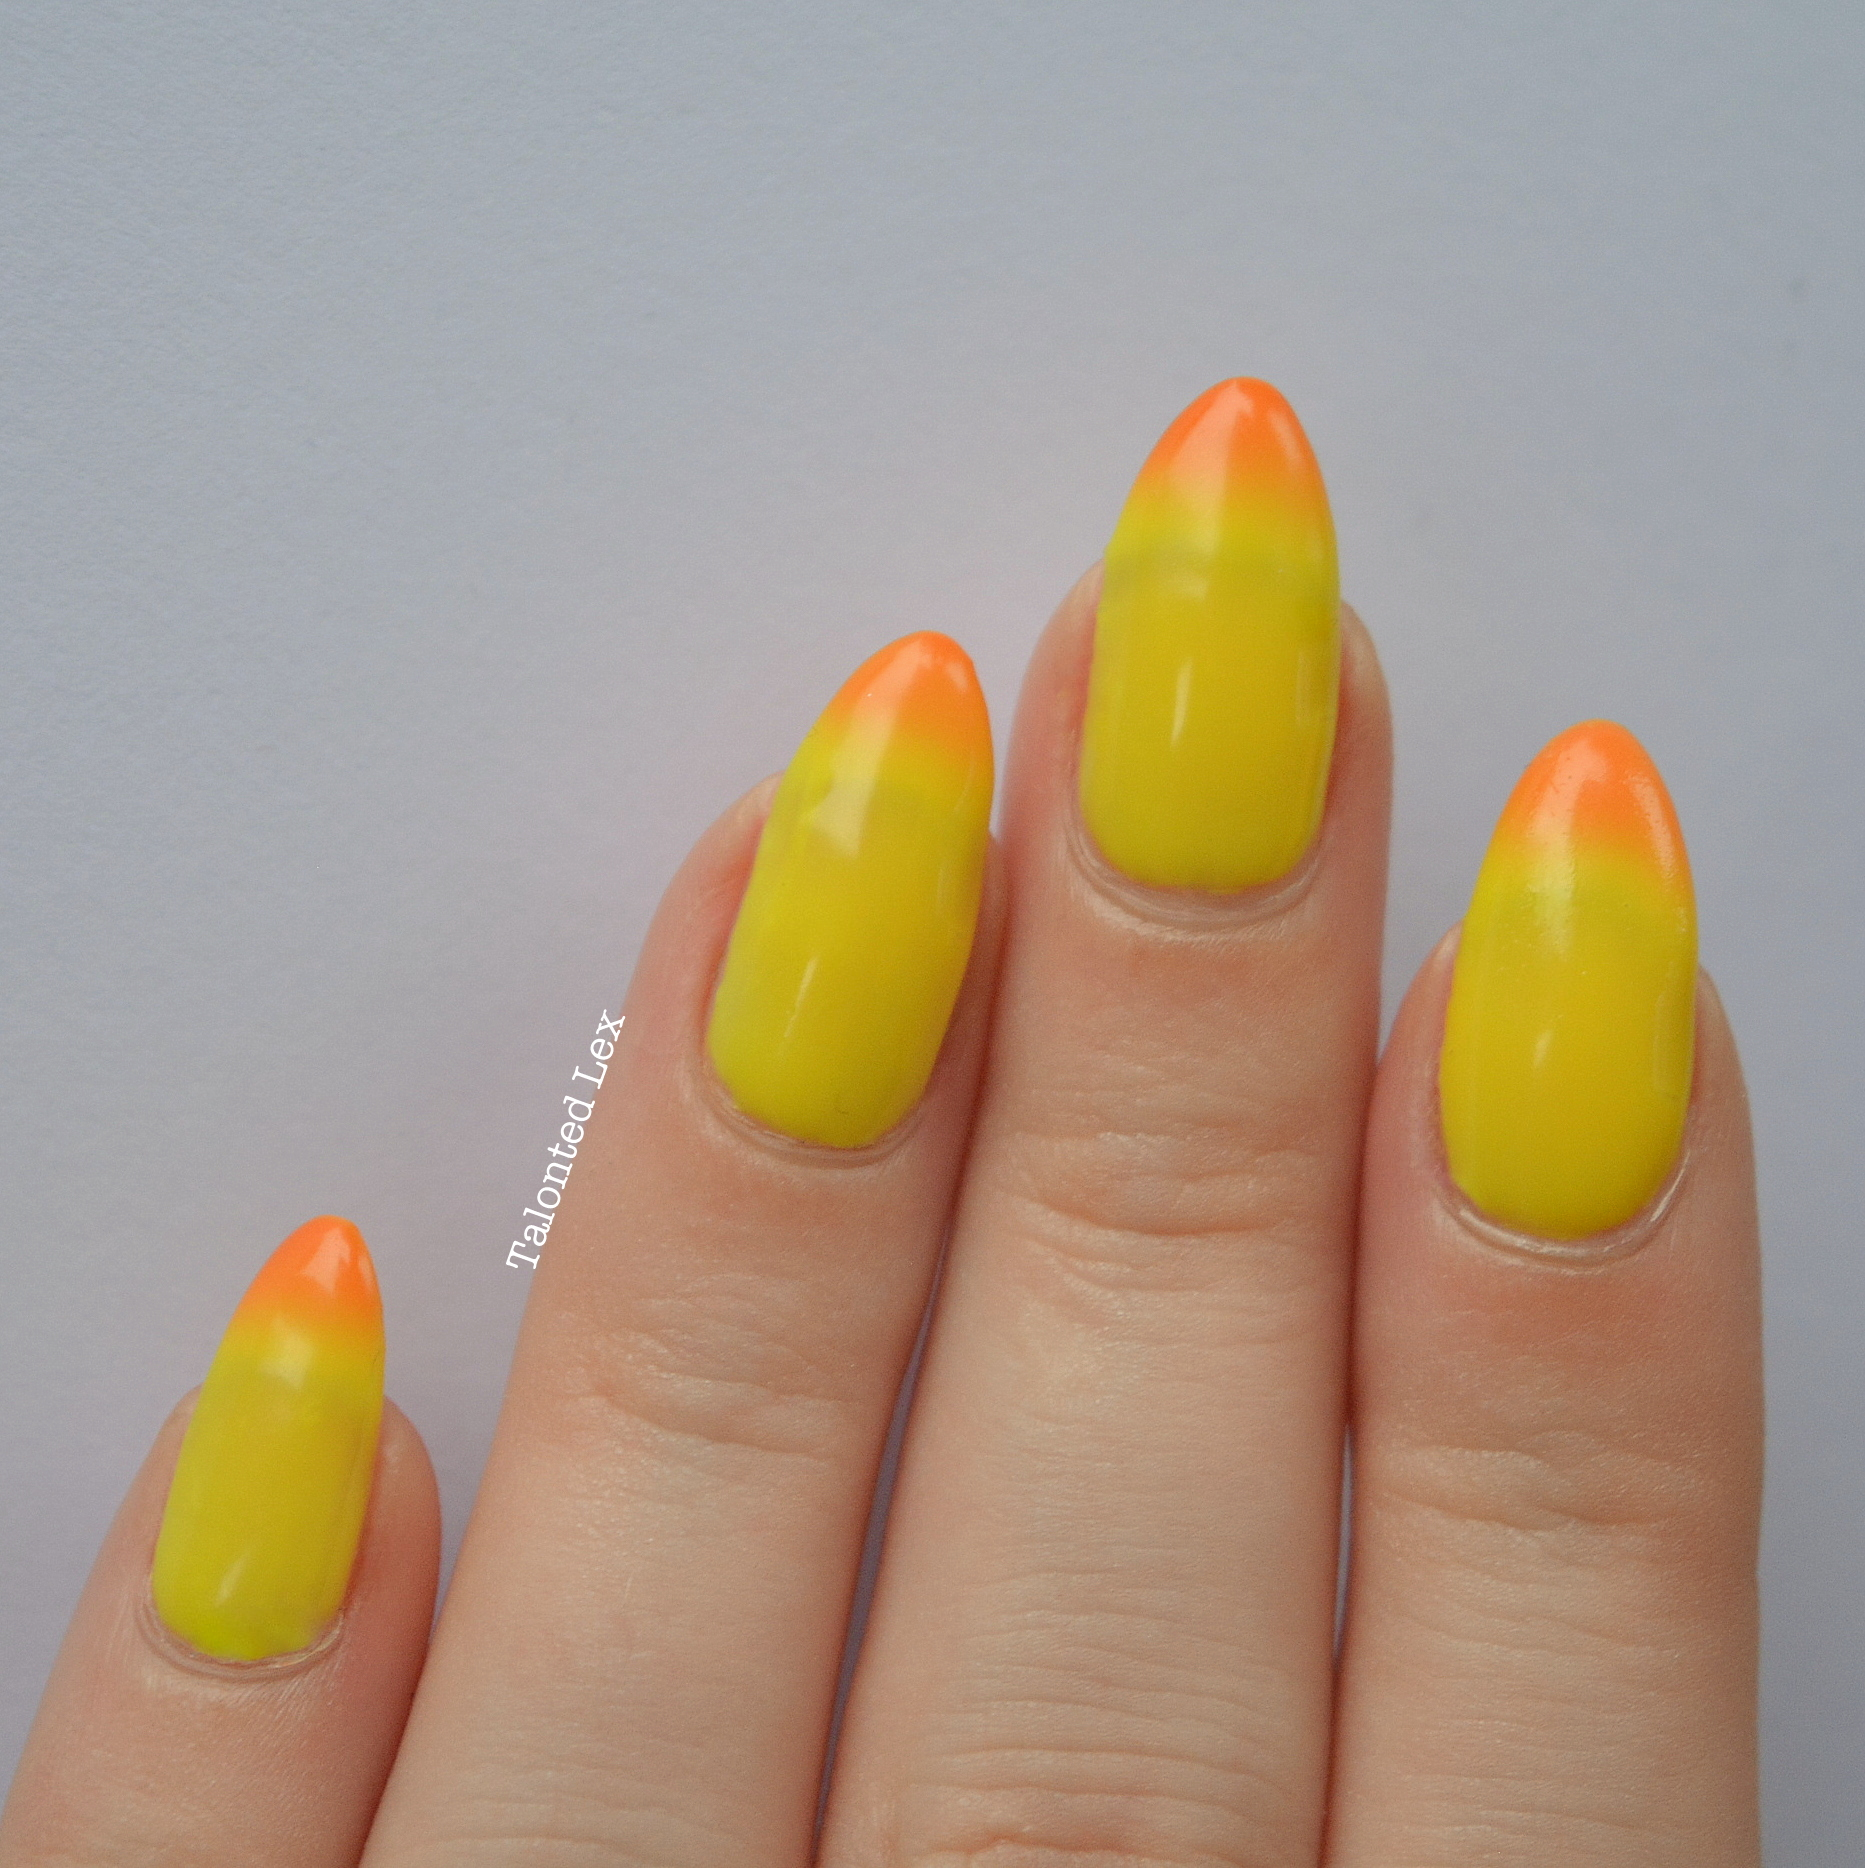 Madam-Glam-Sunshine-Color-Change-Gel-polish-review-Talonted-Lex-4